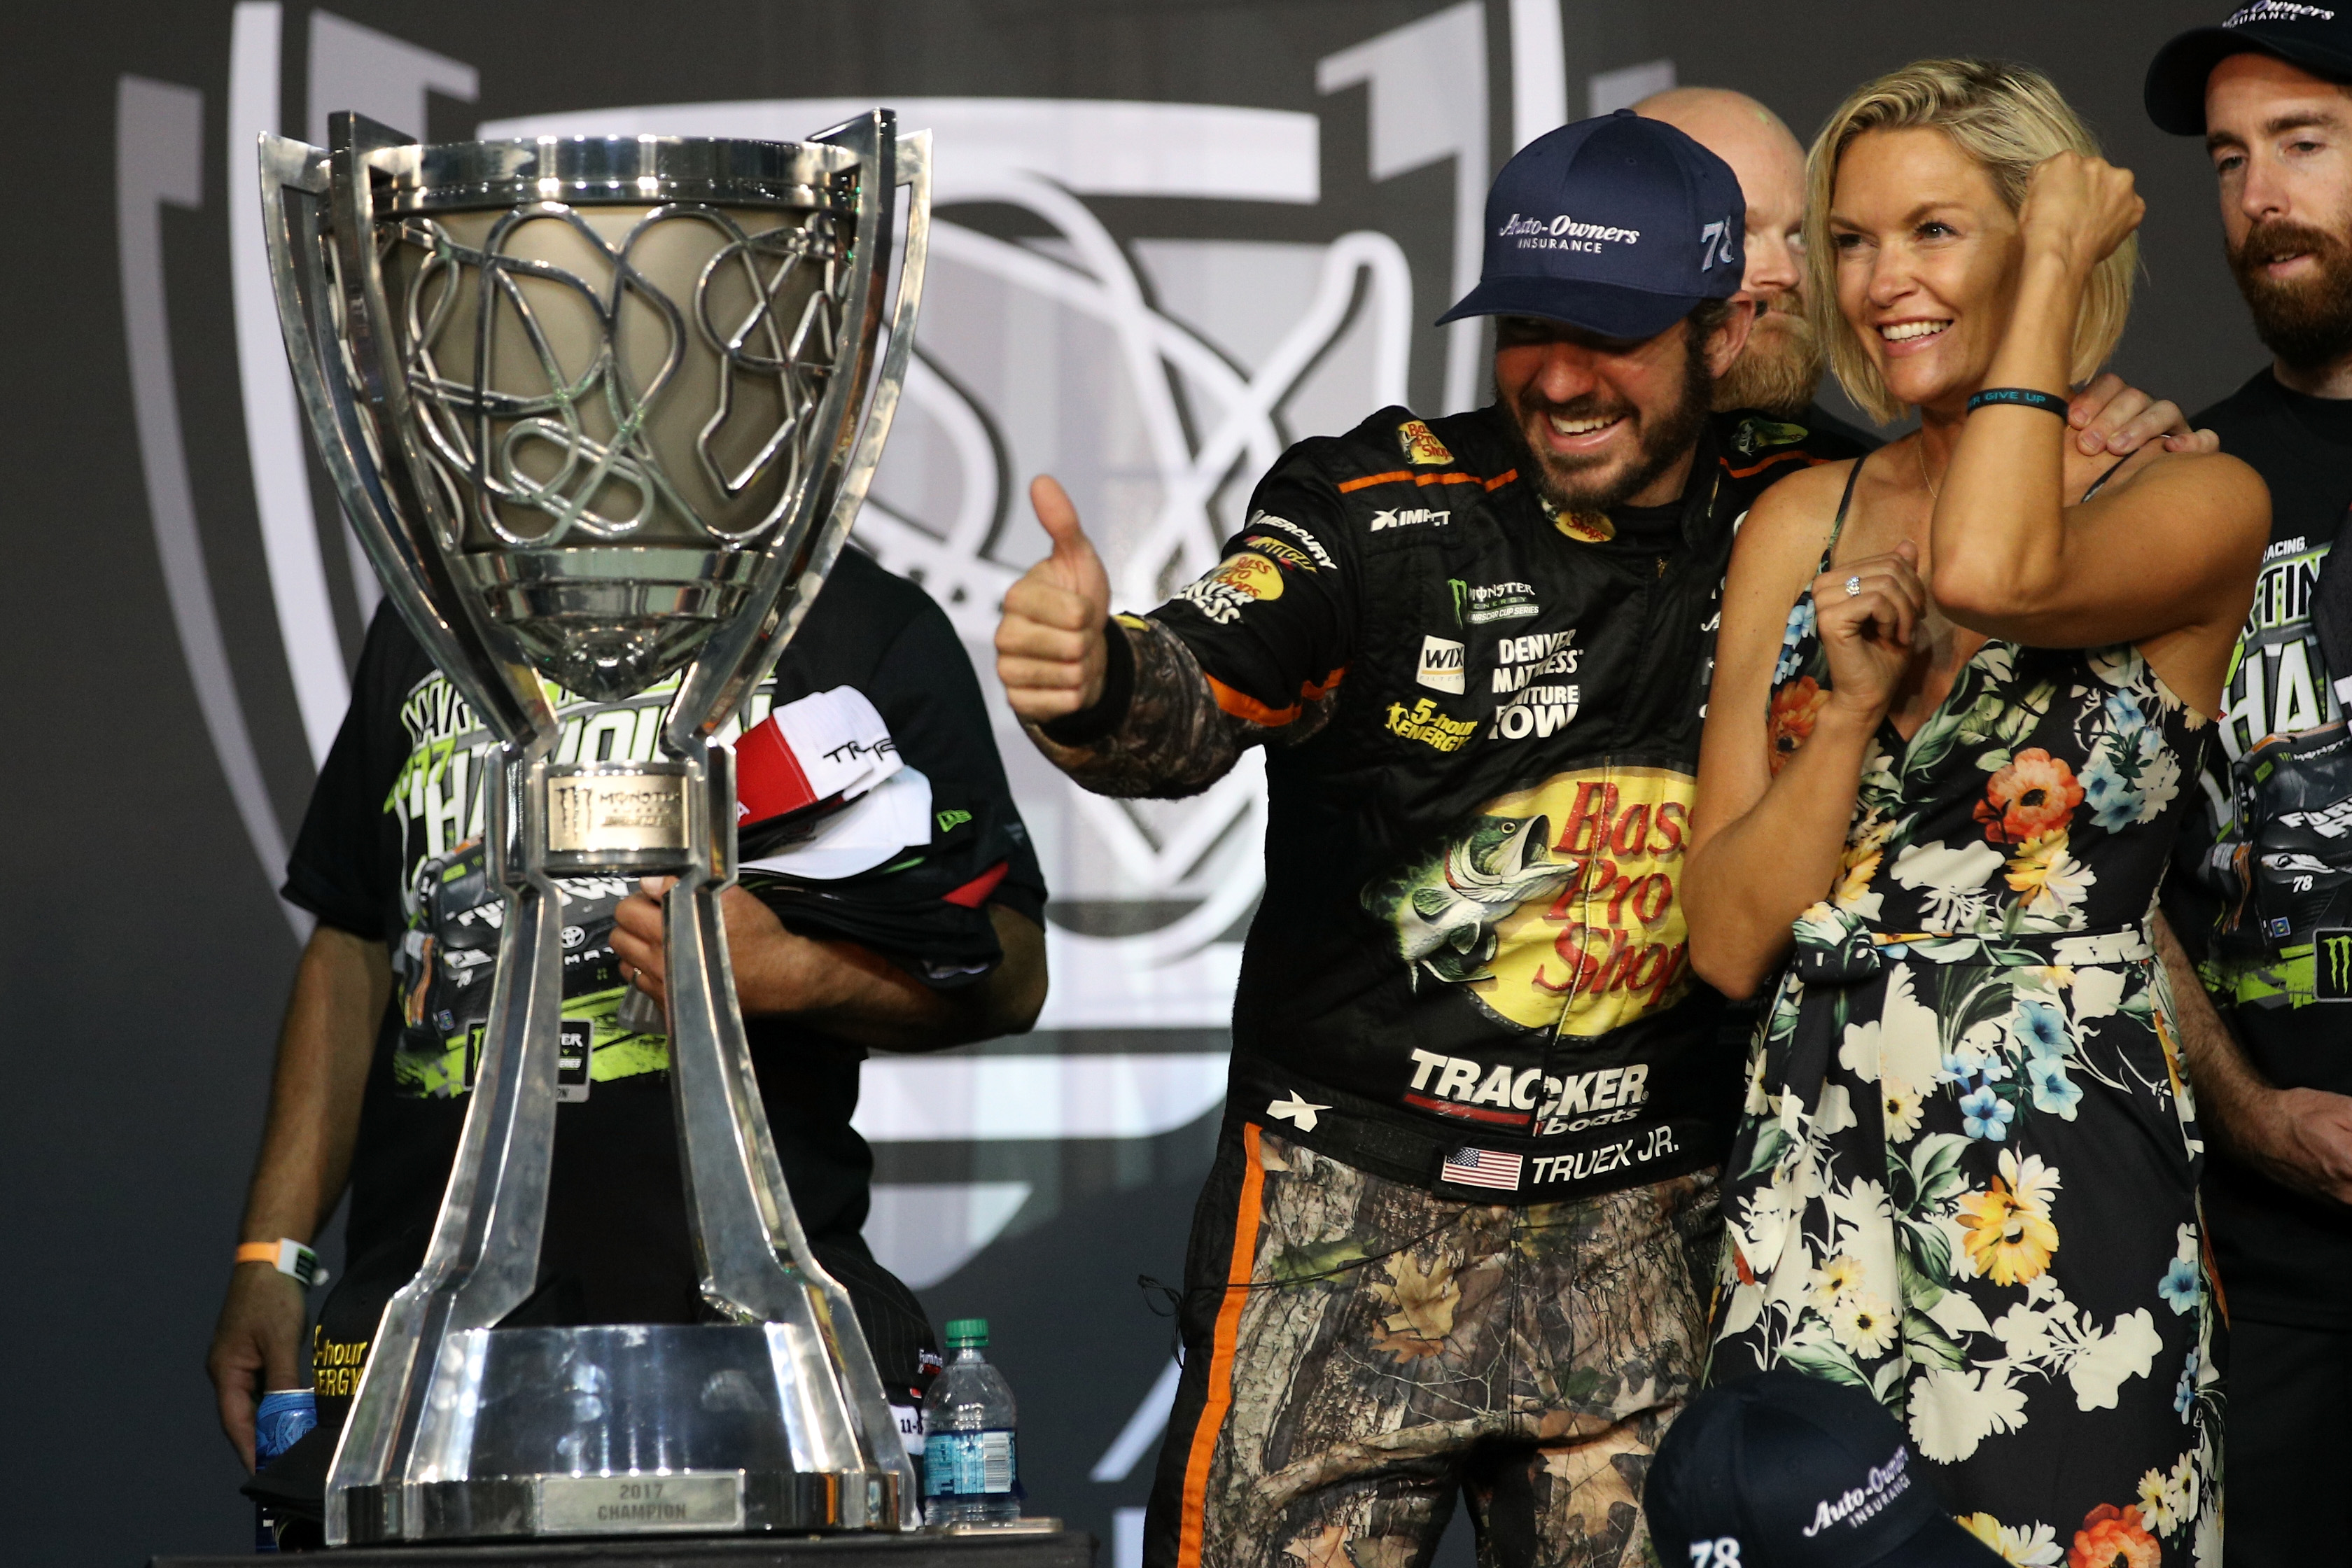 Auto-Owners Insurance, Furniture Row Racing Crowned 2017 Champions with Martin Truex Jr Behind the Wheel